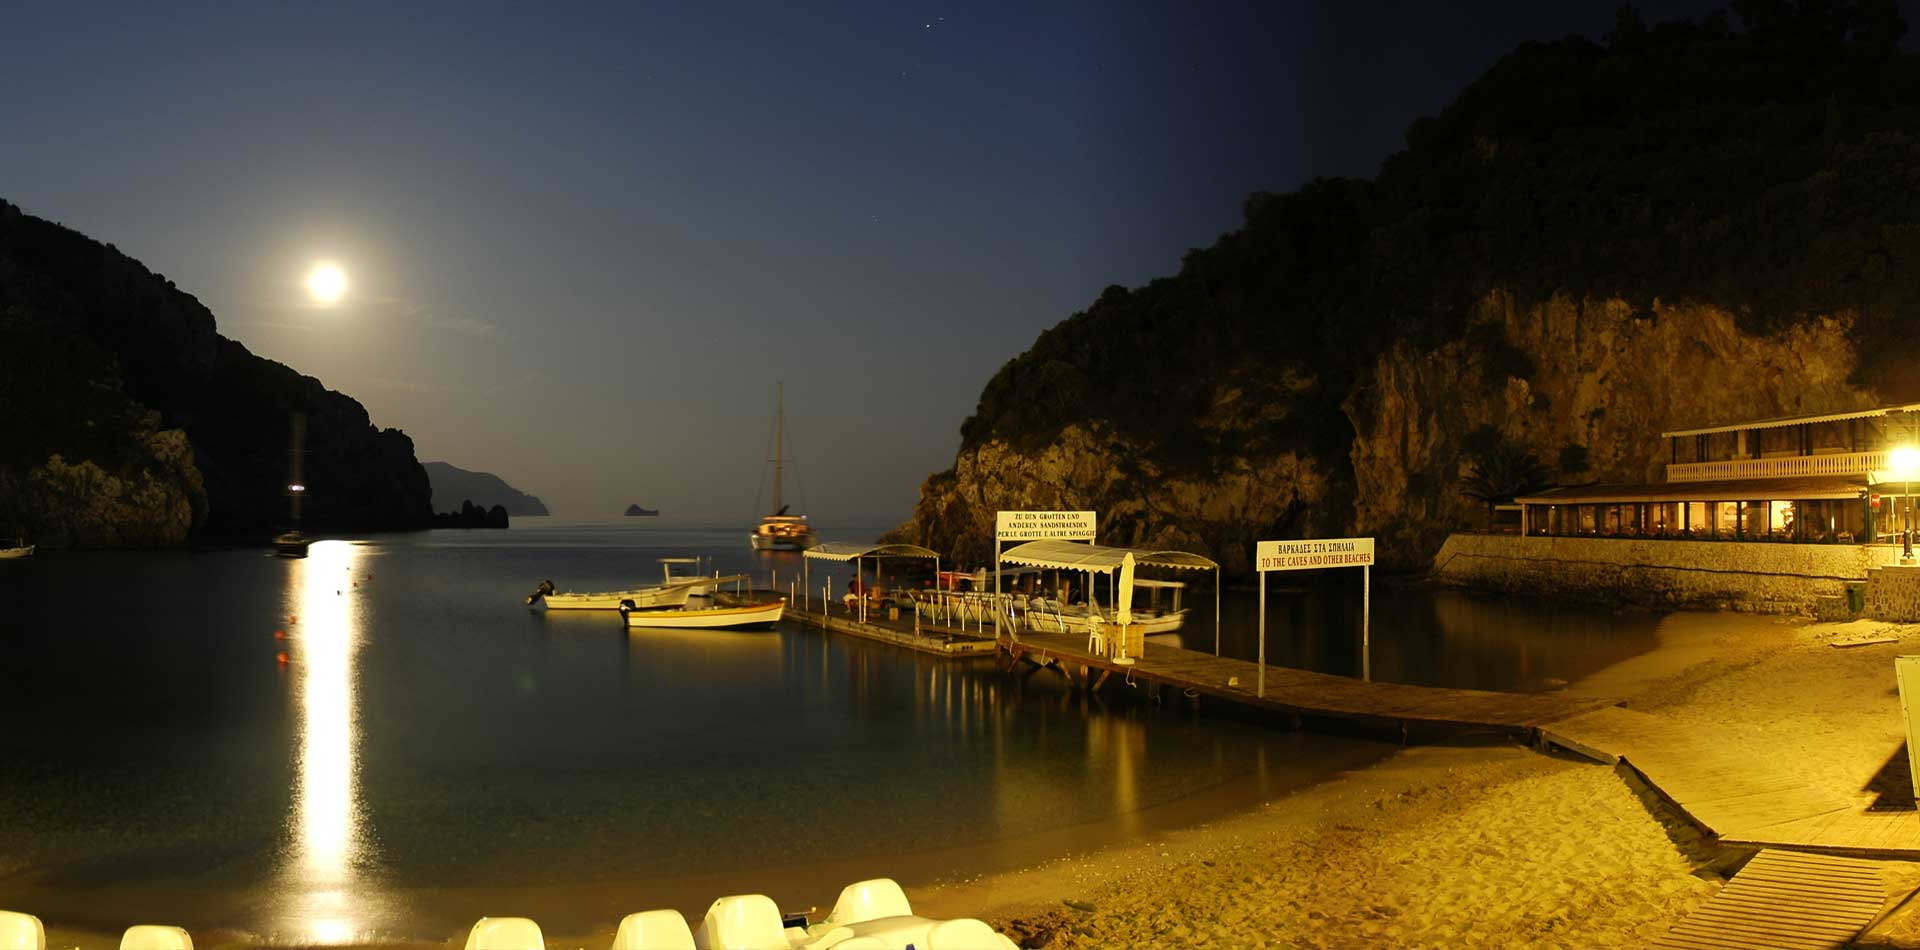 The main beach of Paleokastritsa at night.